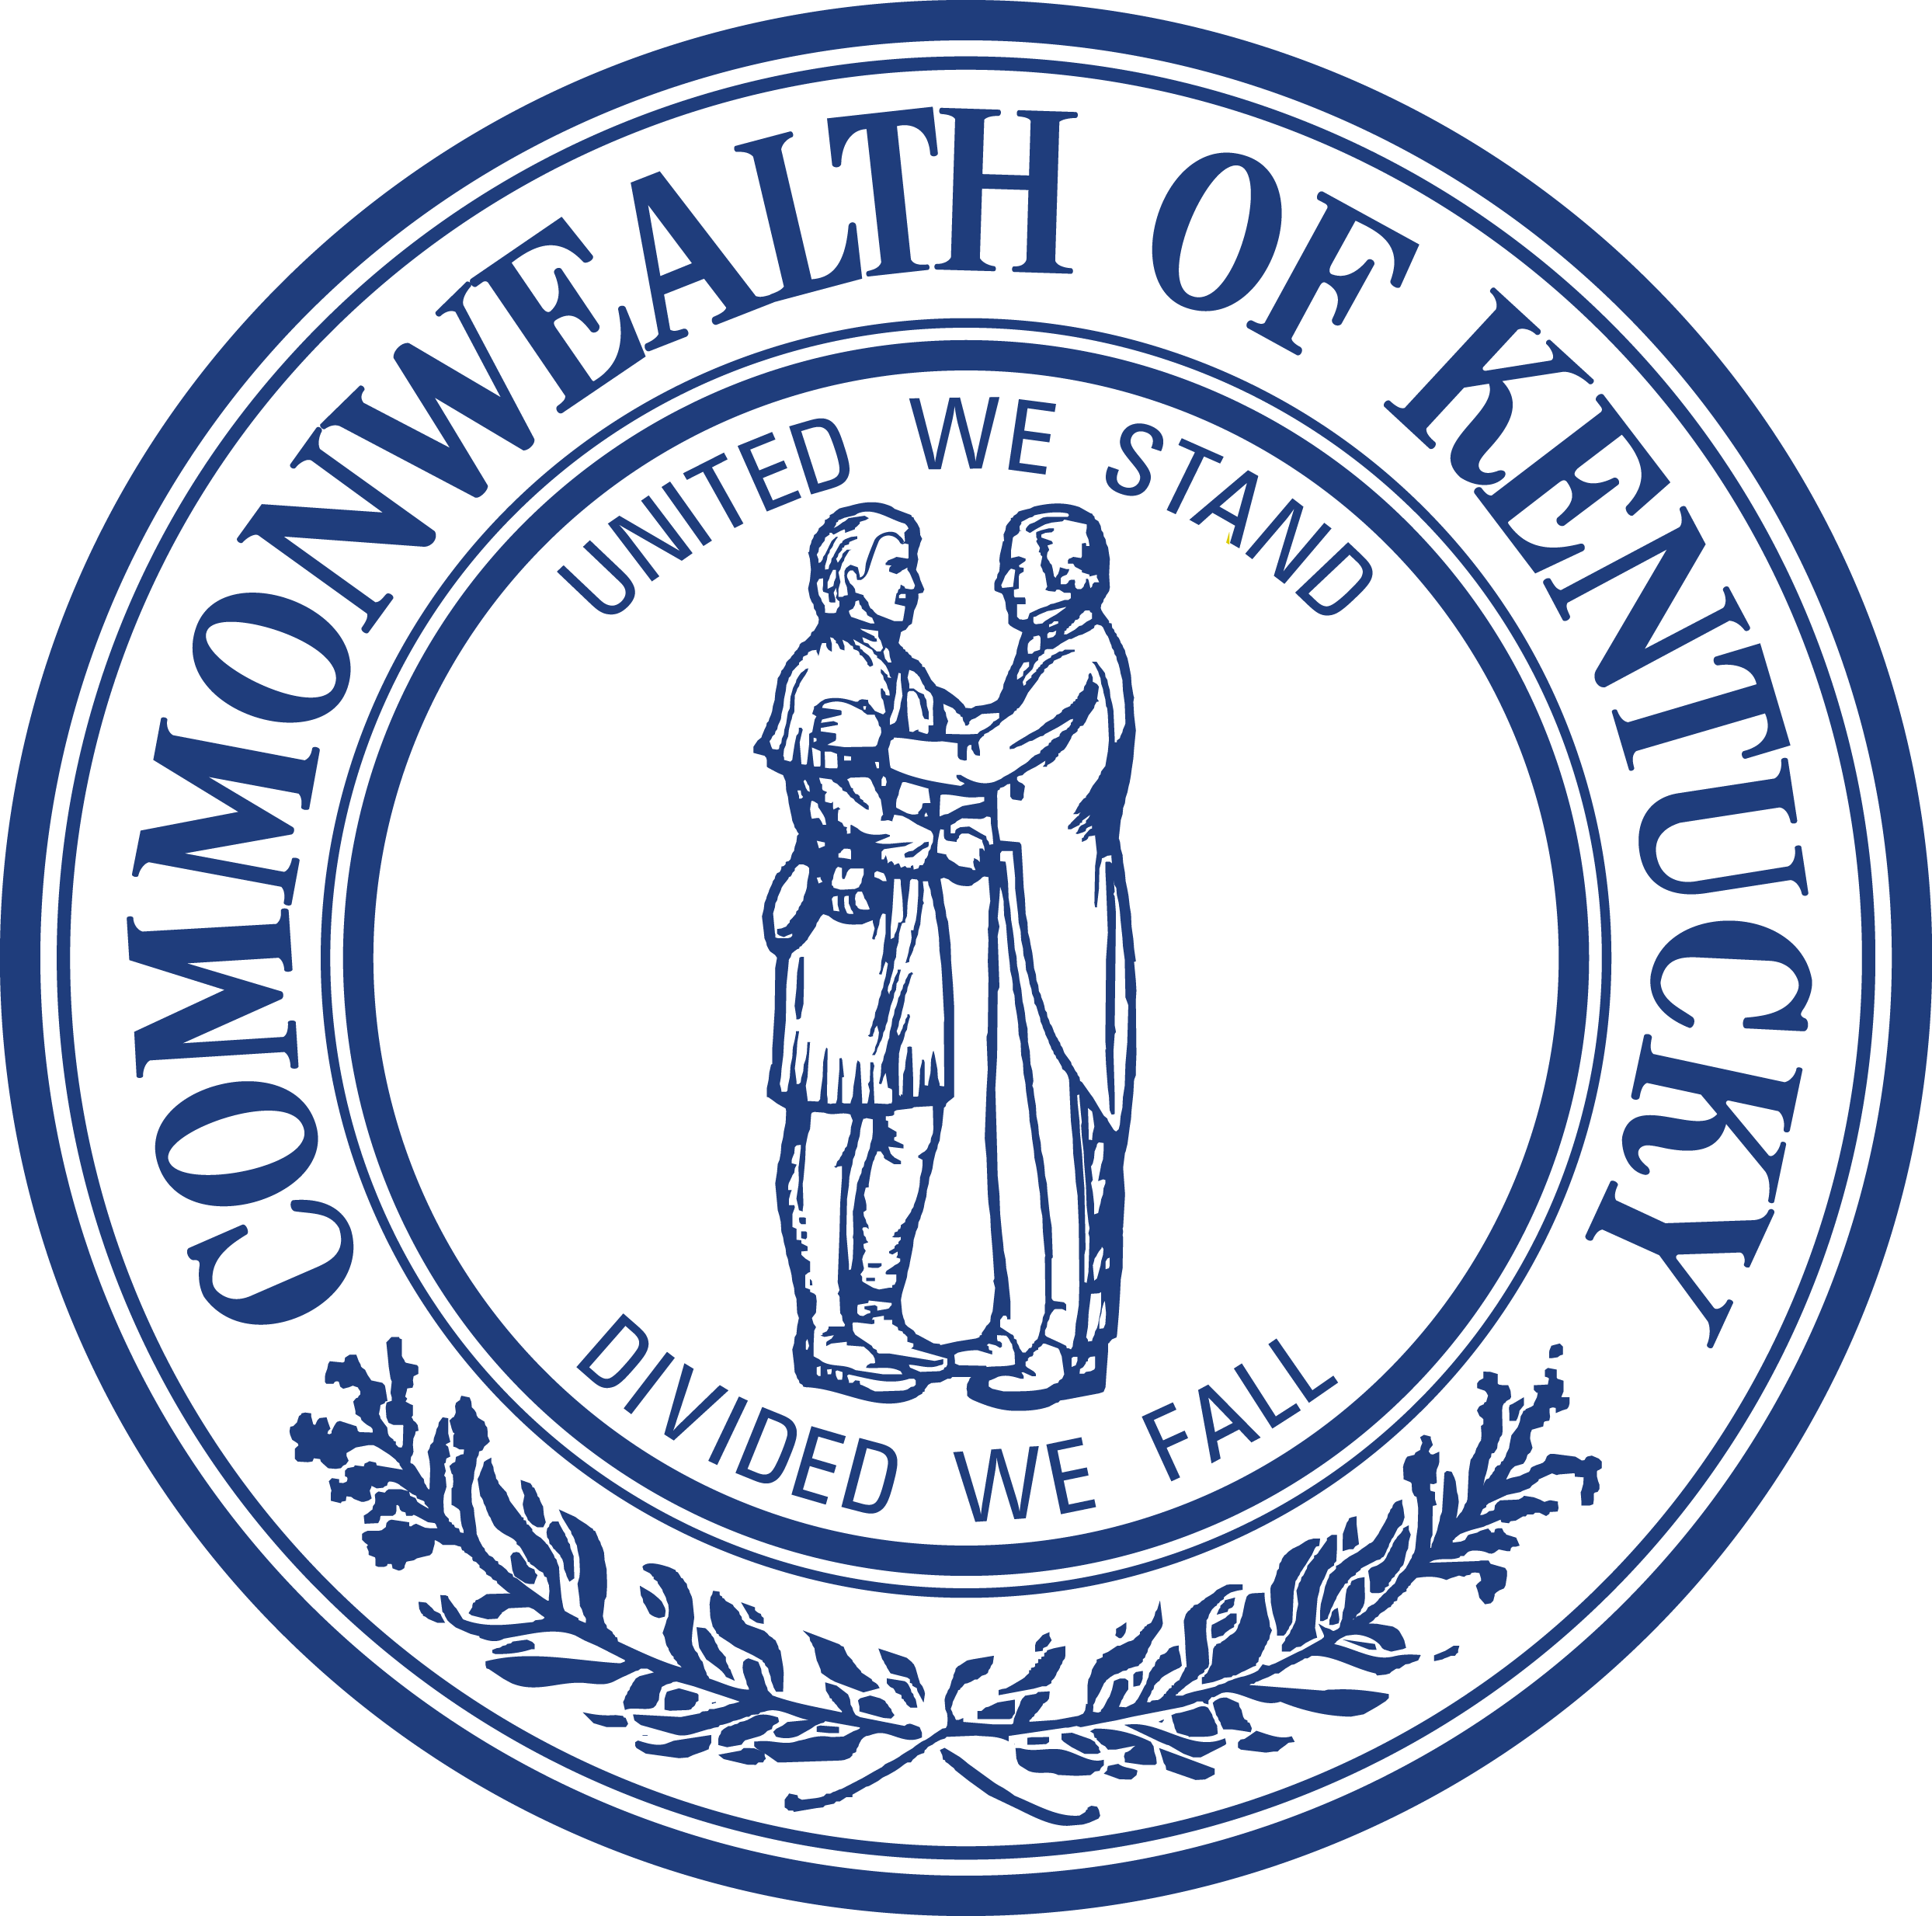 The Kentucky Cabinet for Economic Development is the ...